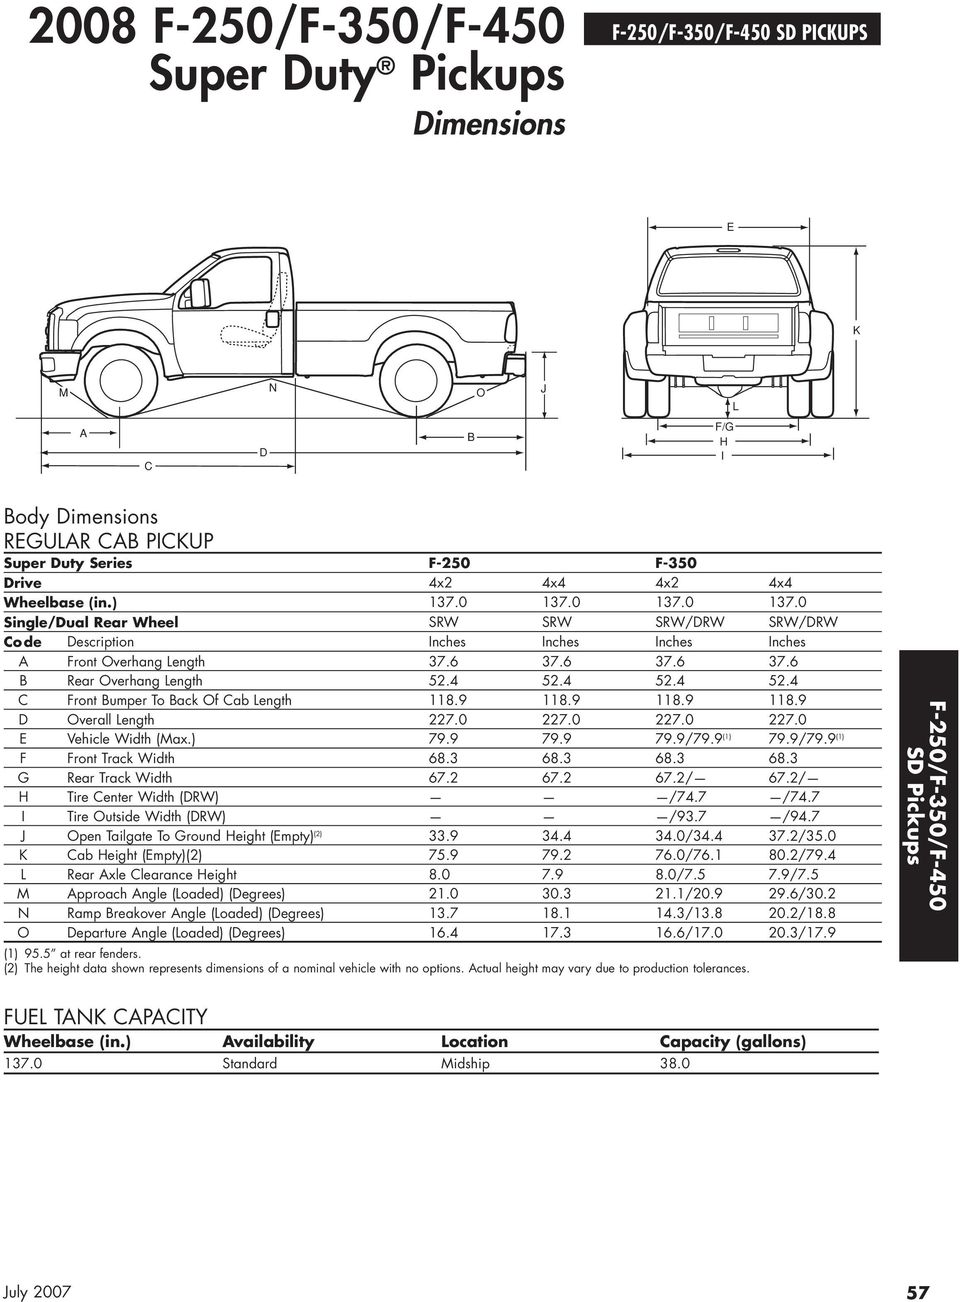 2008 F 250 F 350 F 450 Super Duty Pickups Dimensions Pdf